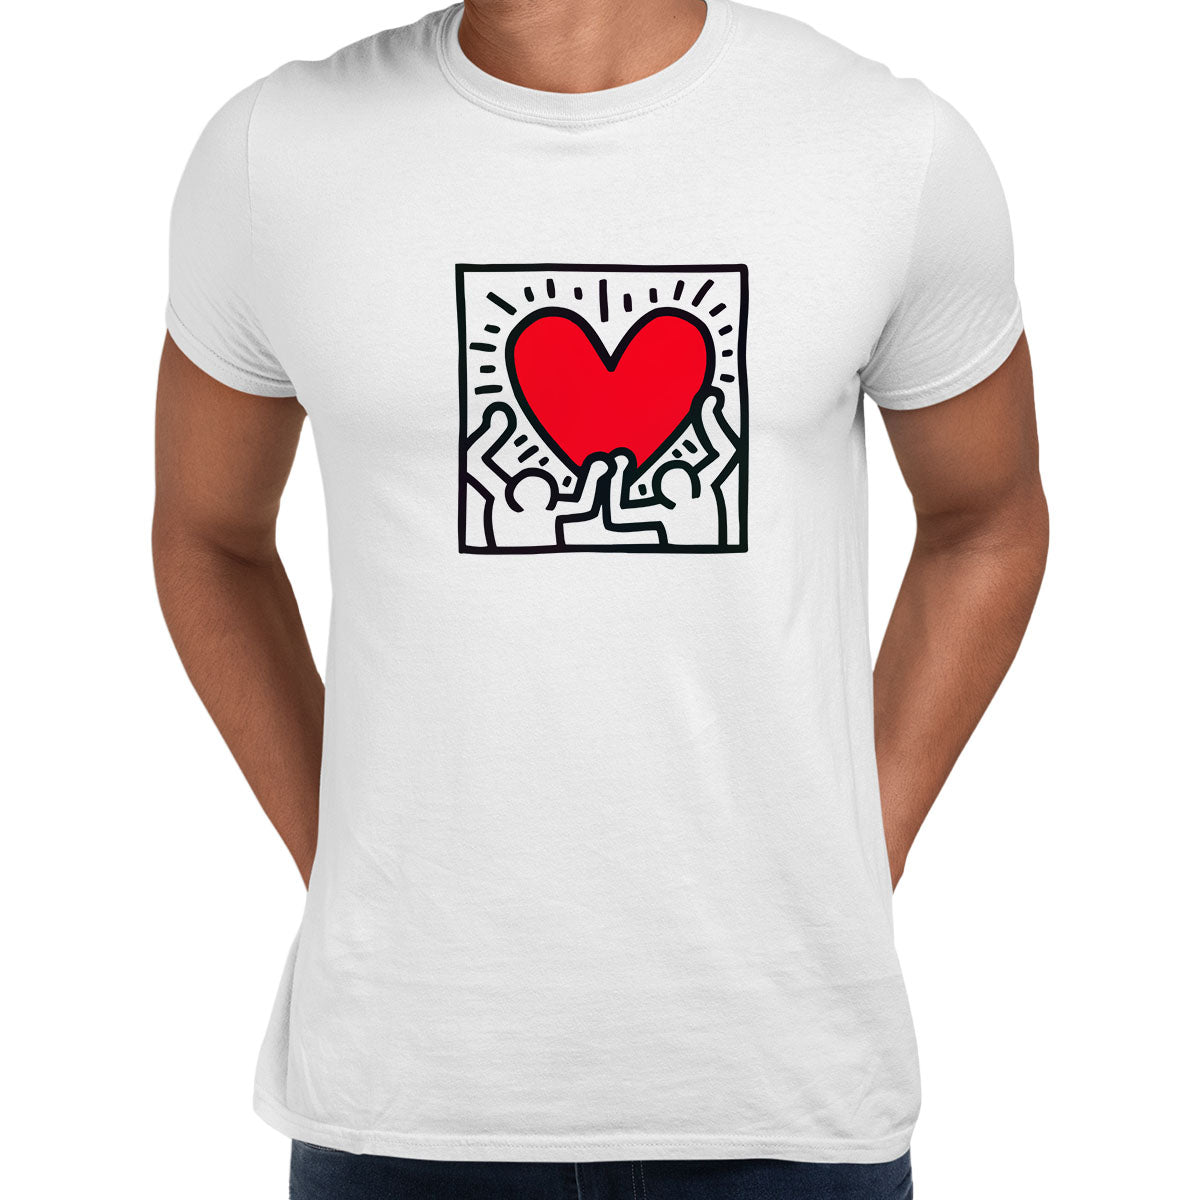 Keith Haring Love Music Talking Heads Abstract Pop Art Heart White Unisex T-Shirt